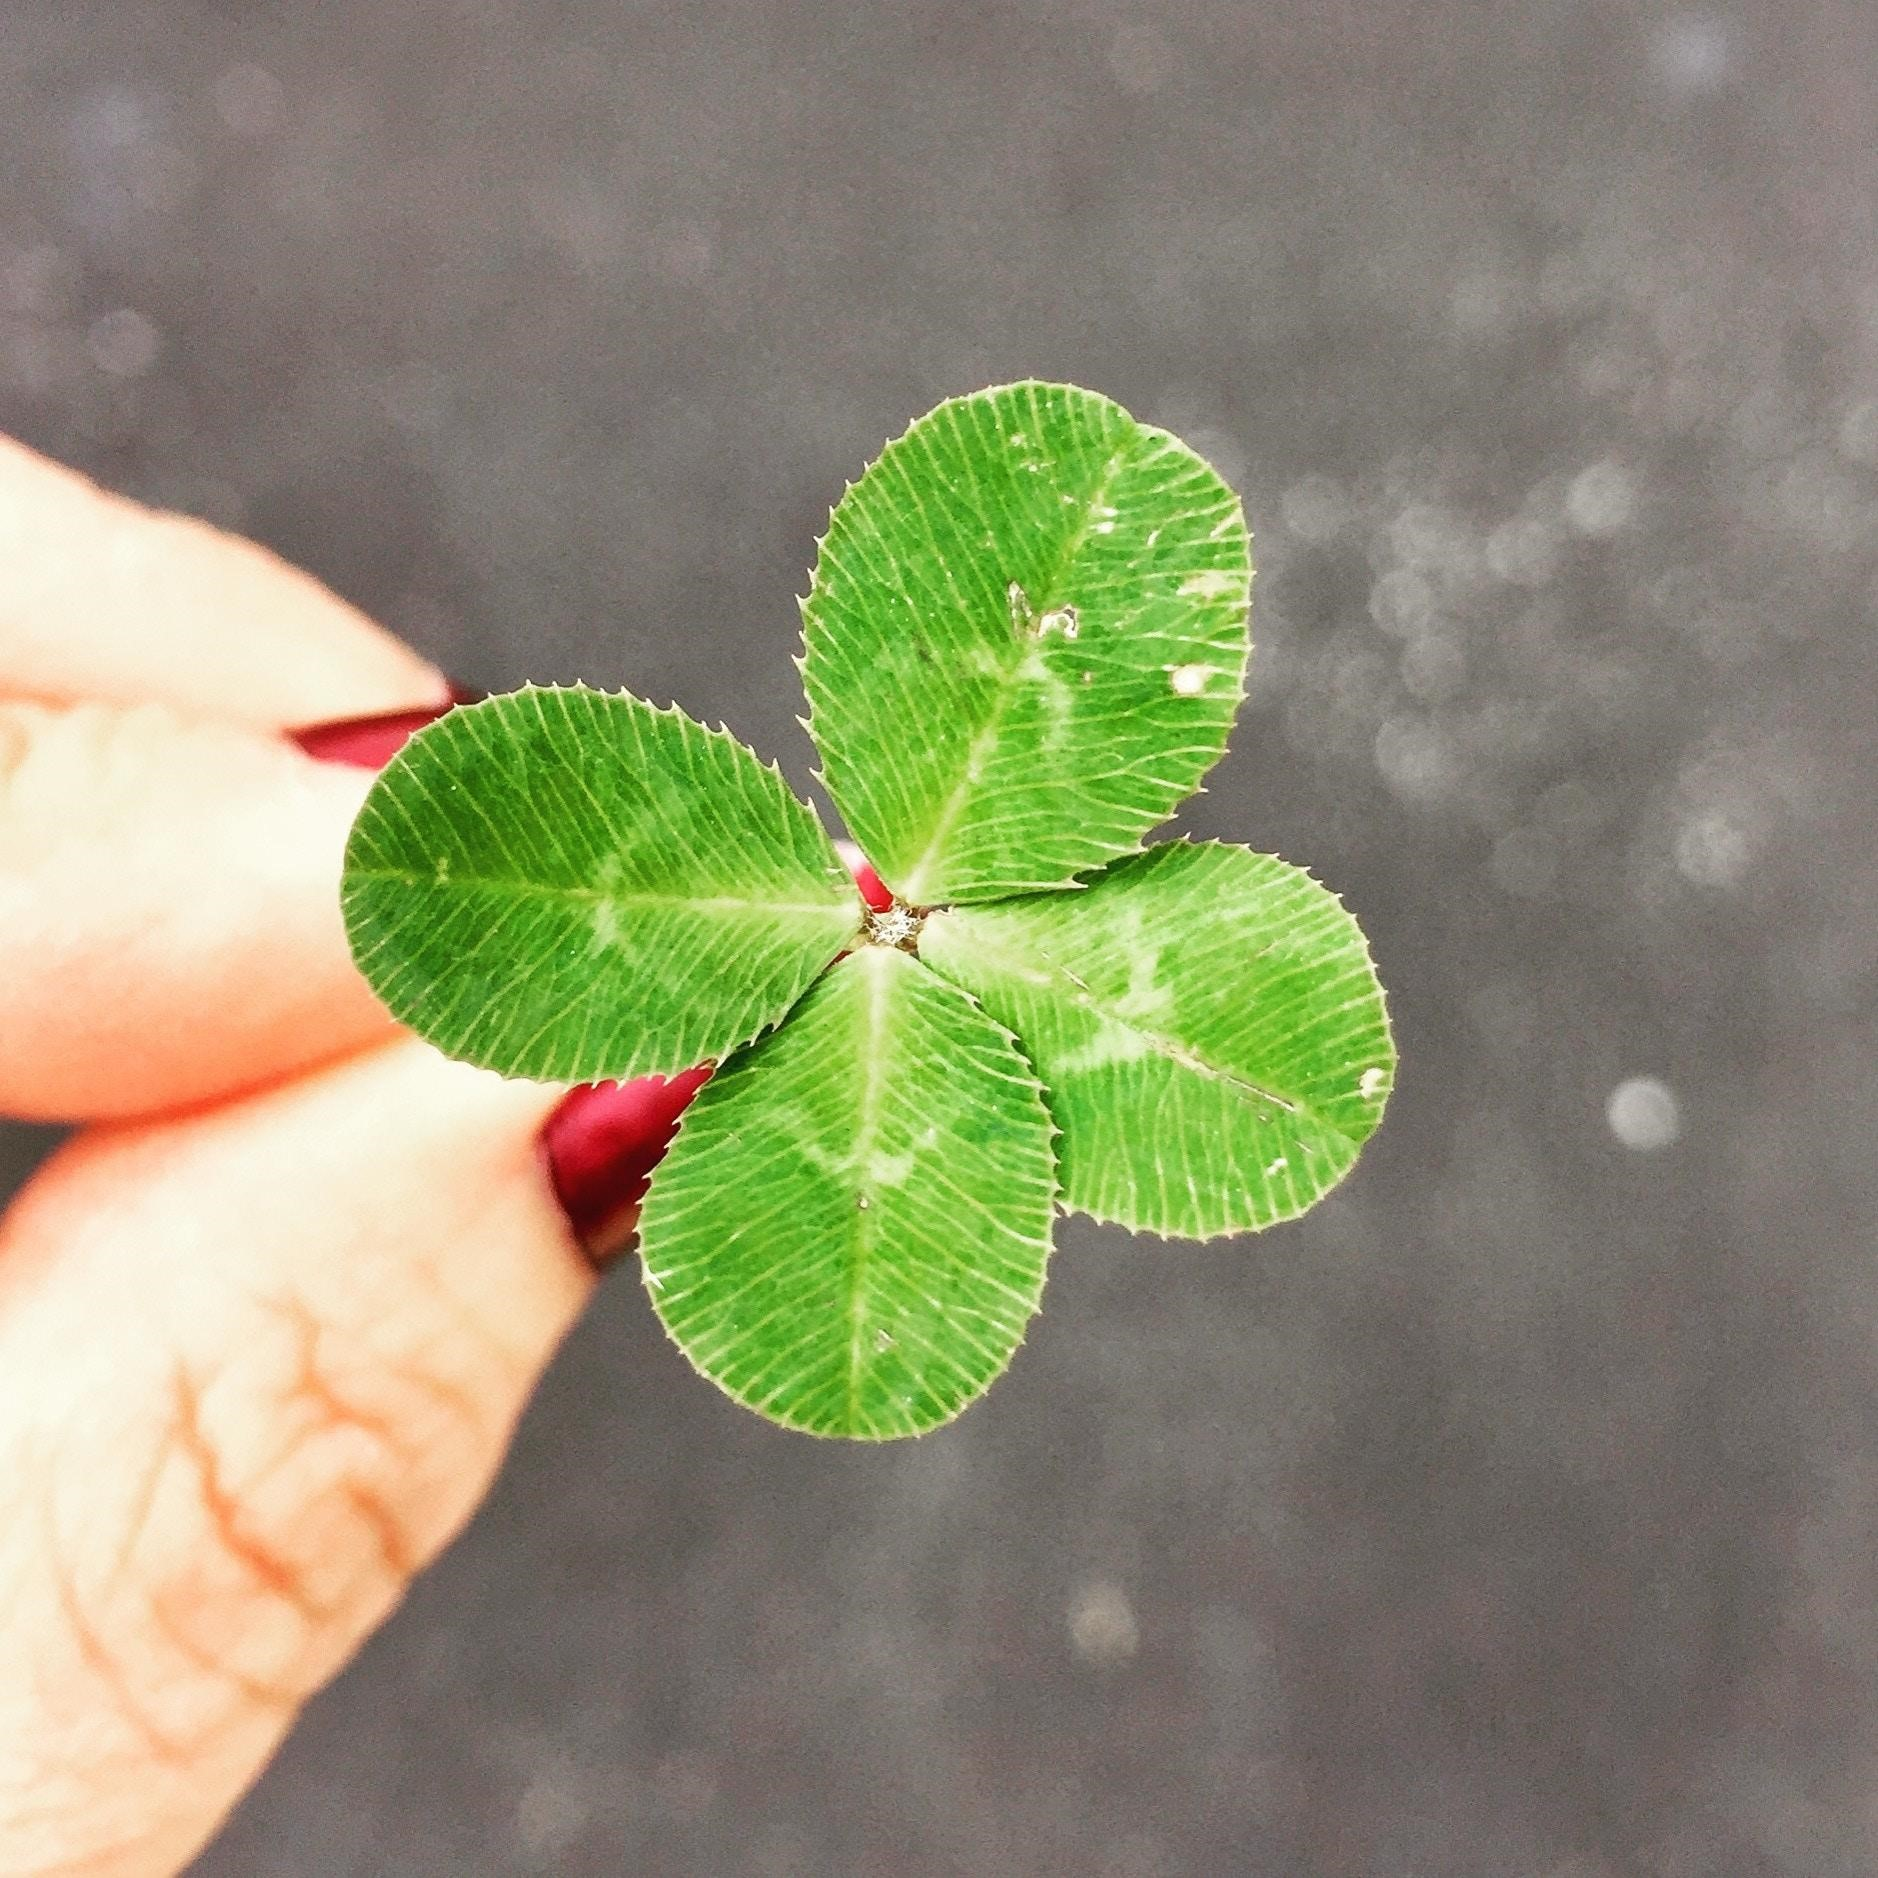 A beutiful green 4 leaf clover - image from https://unsplash.com/photos/49ZXvCLerUo